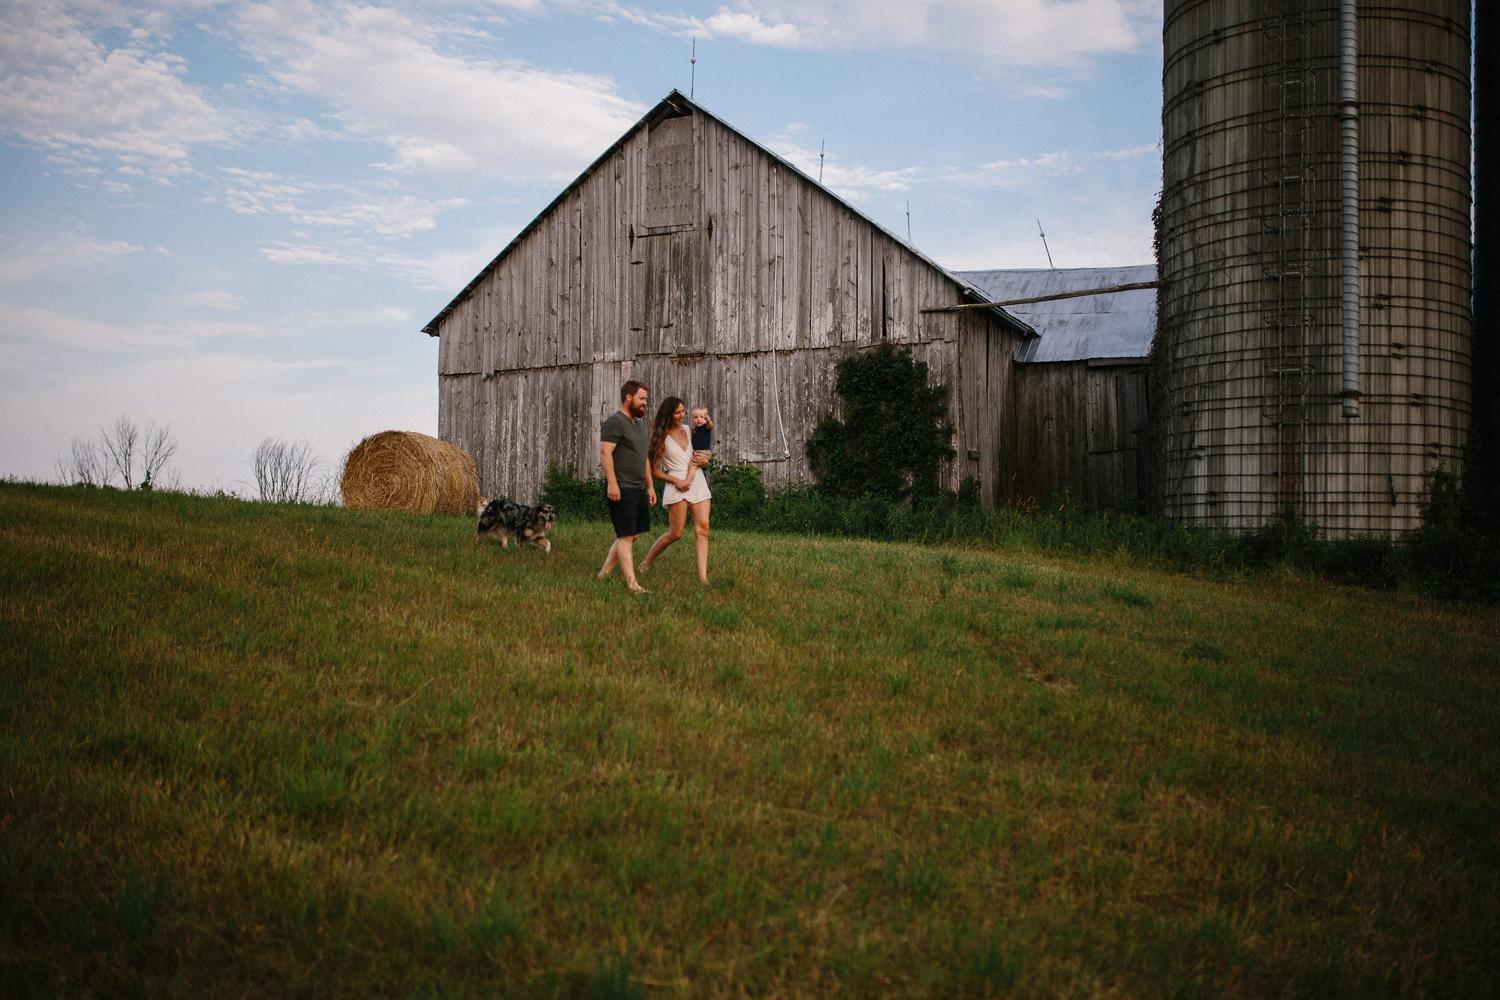 lanark highlands farm family photo session - kerry ford photography-045.jpg